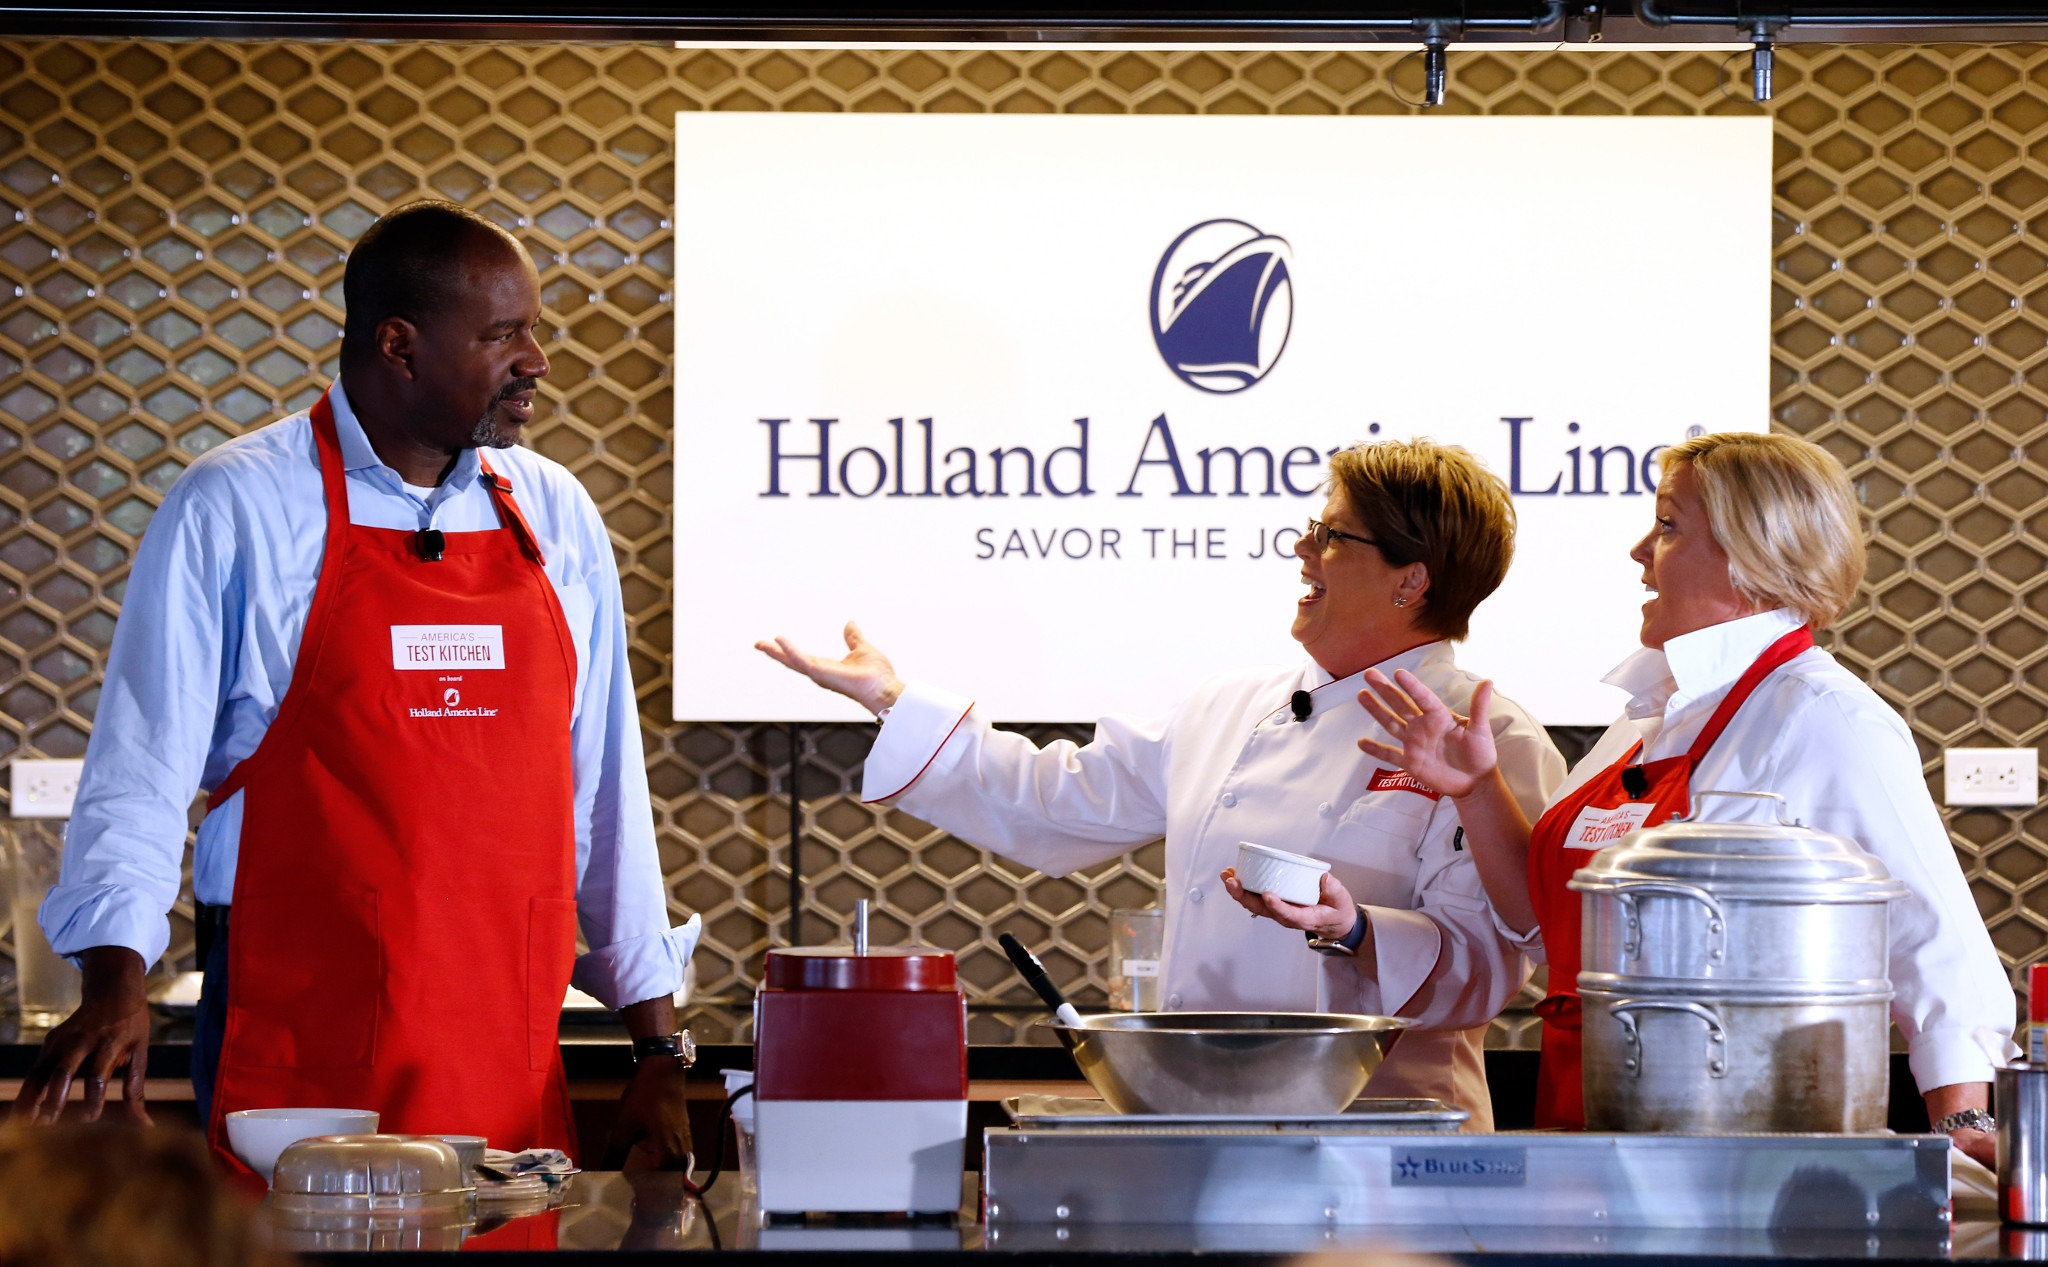 Holland America Line announces new culinary partnership with America's Test Kitchen during an event at the Institute of Culinary Education on Tuesday, September 20, 2016 in New York. Photo: Adam Hunger